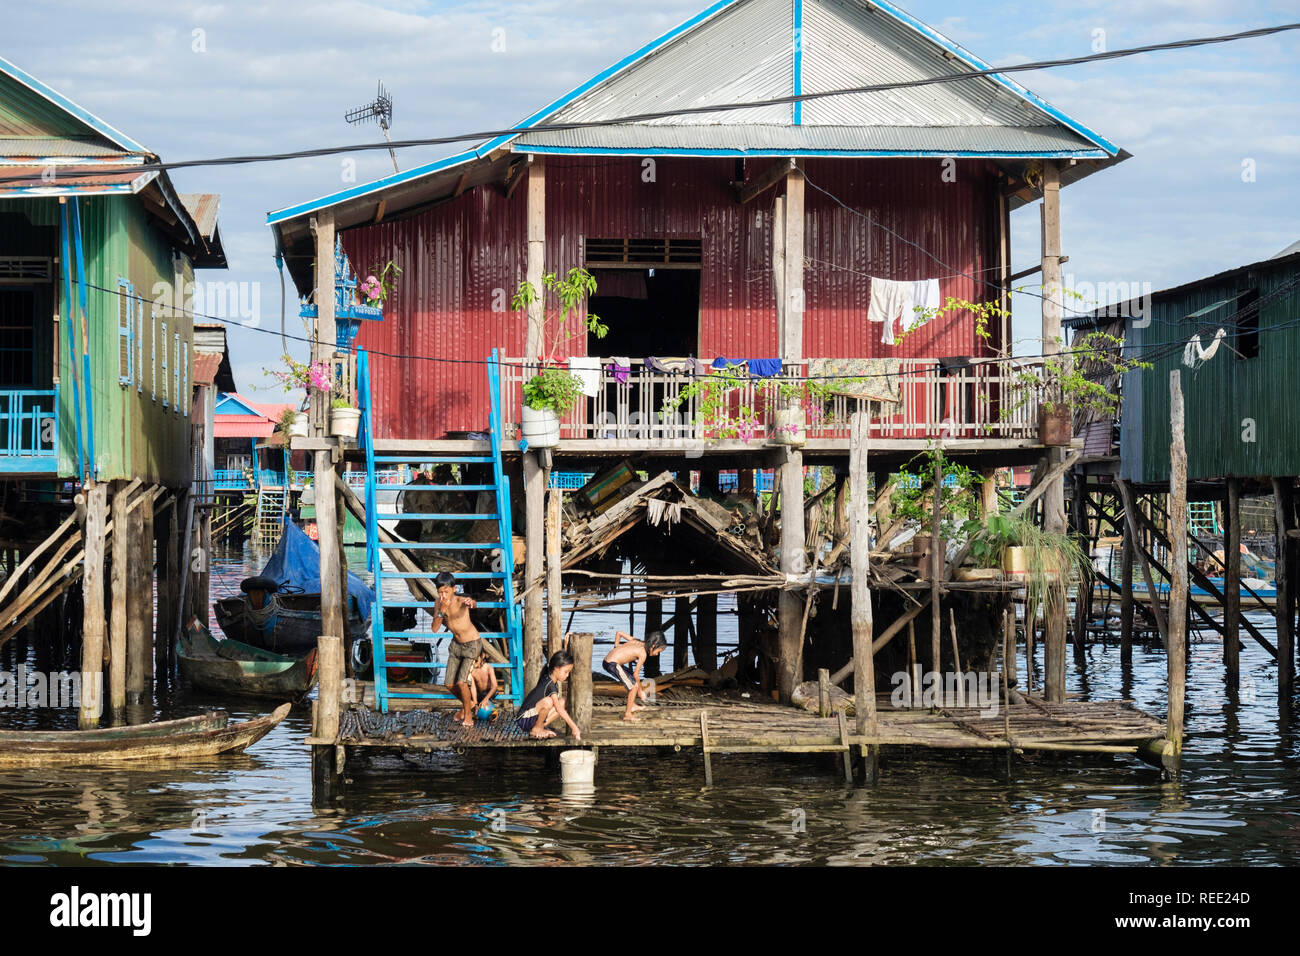 Children playing outside a house on stilts in floating village in Tonle Sap lake. Kampong Phluk, Siem Reap province, Cambodia, southeast Asia Stock Photo